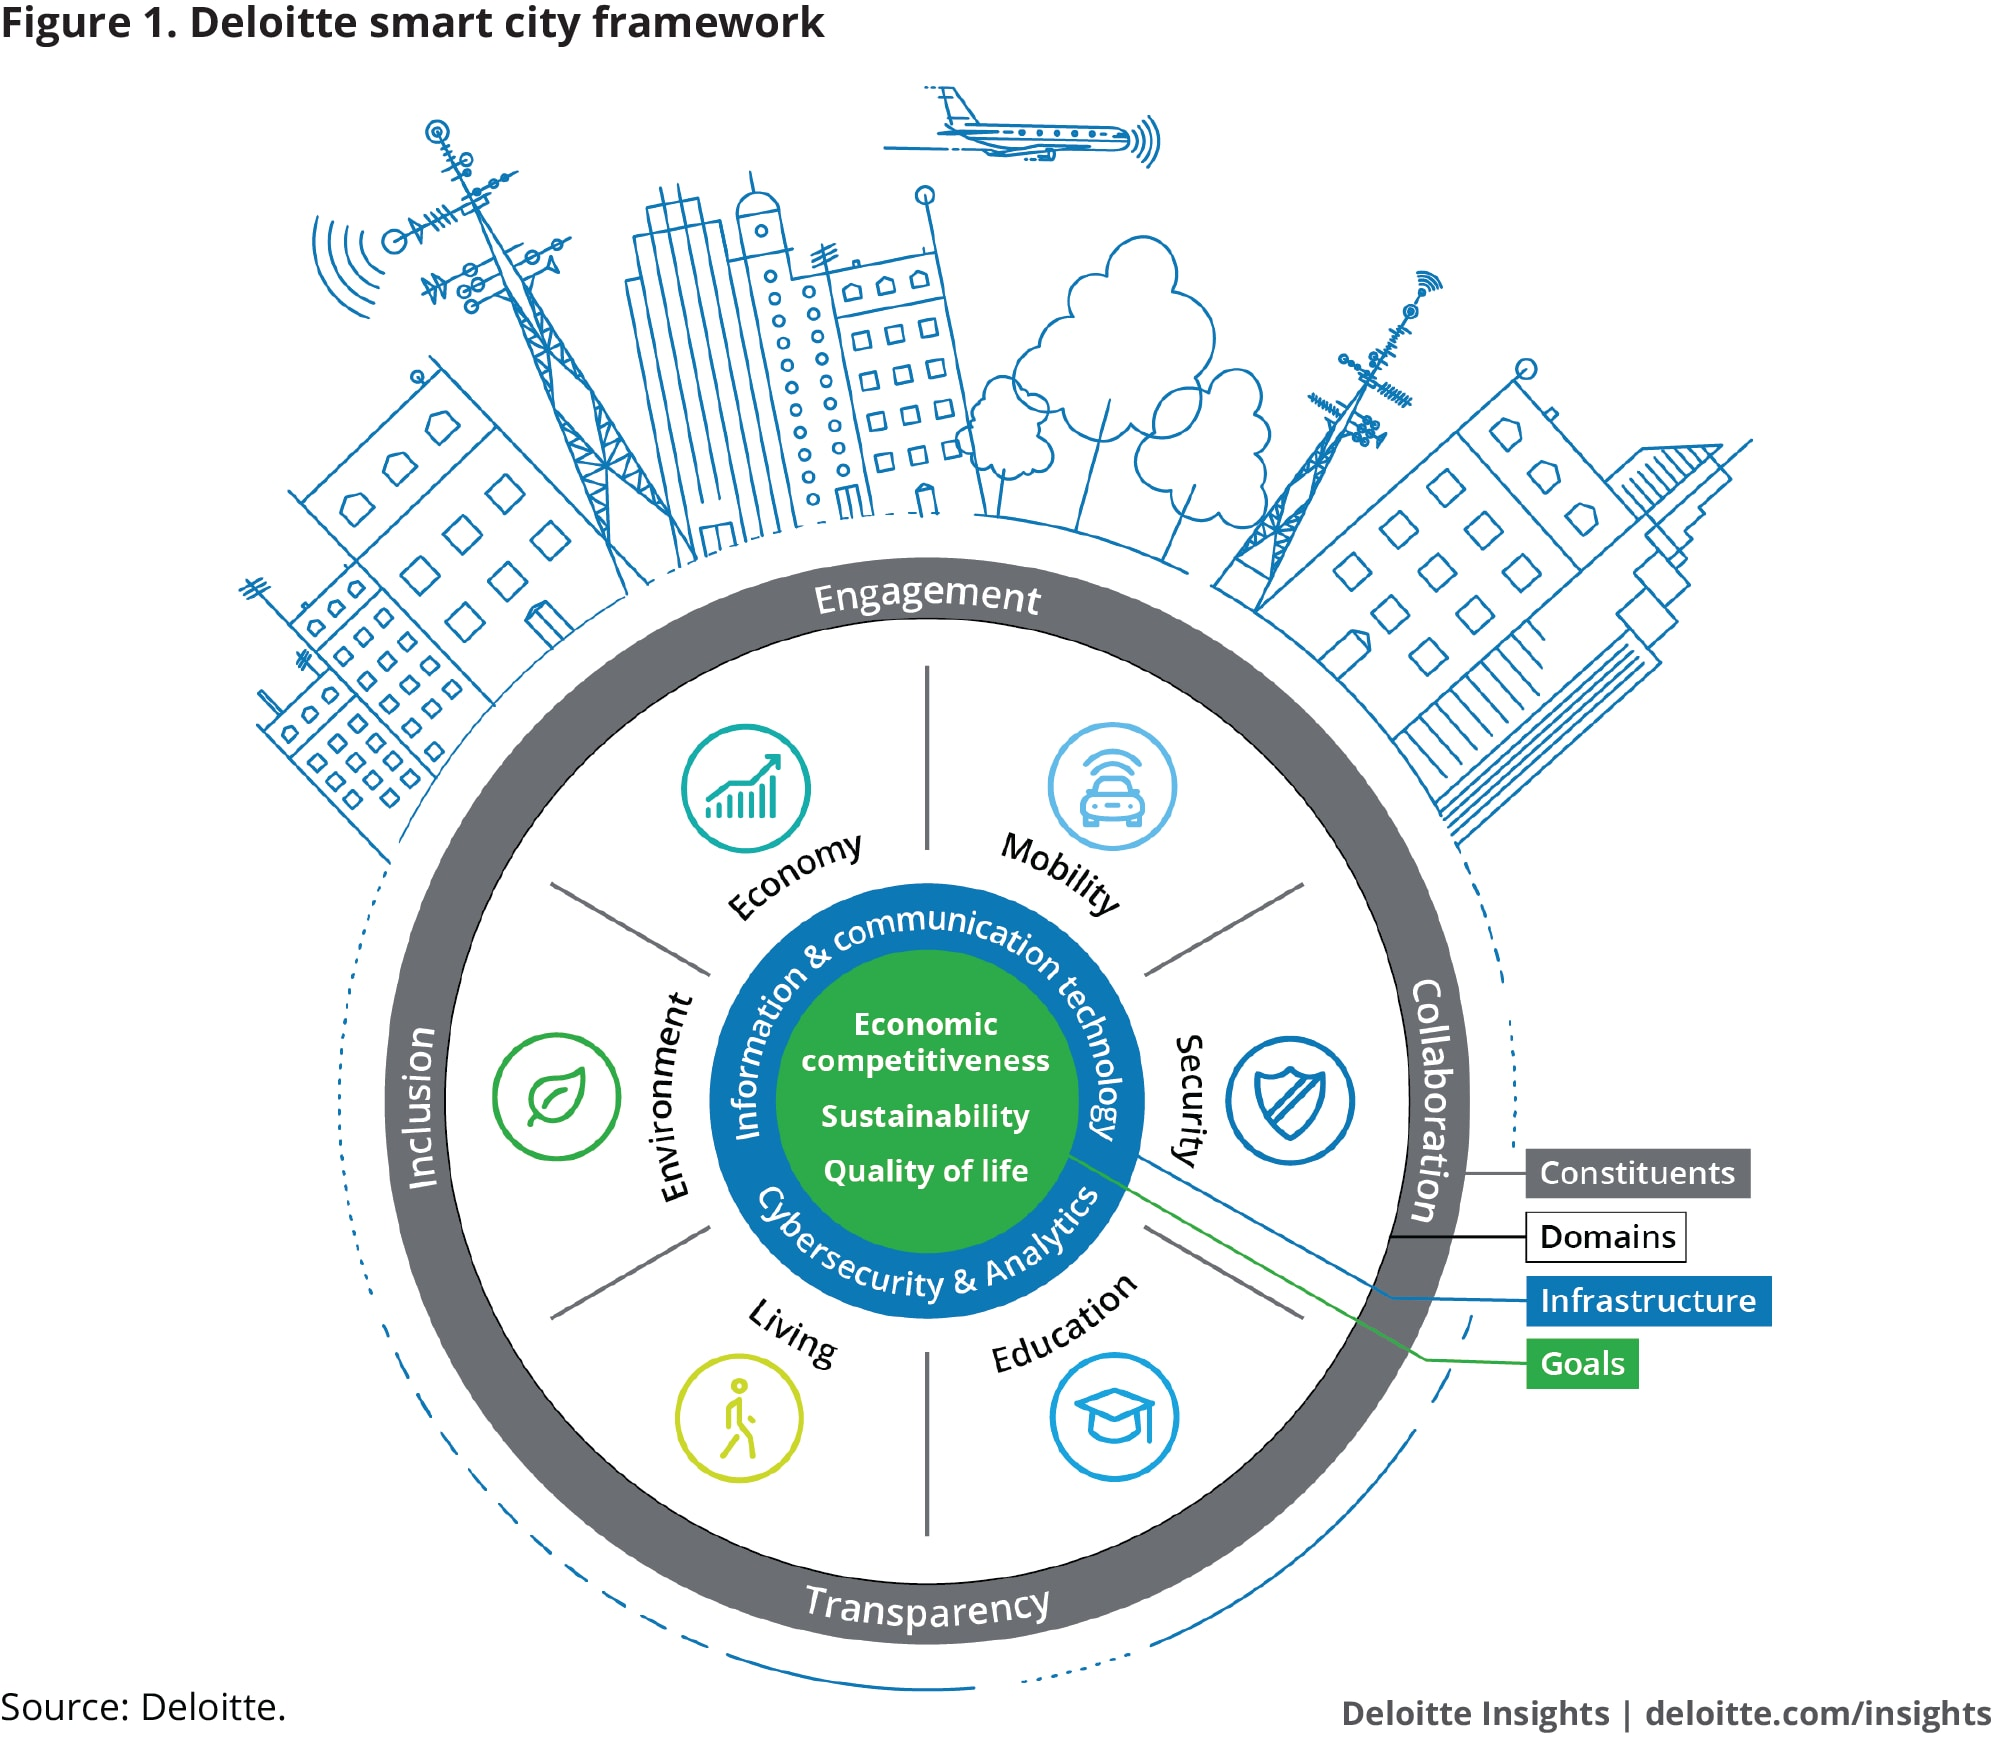 deloitte.com - Forces of change: Smart cities